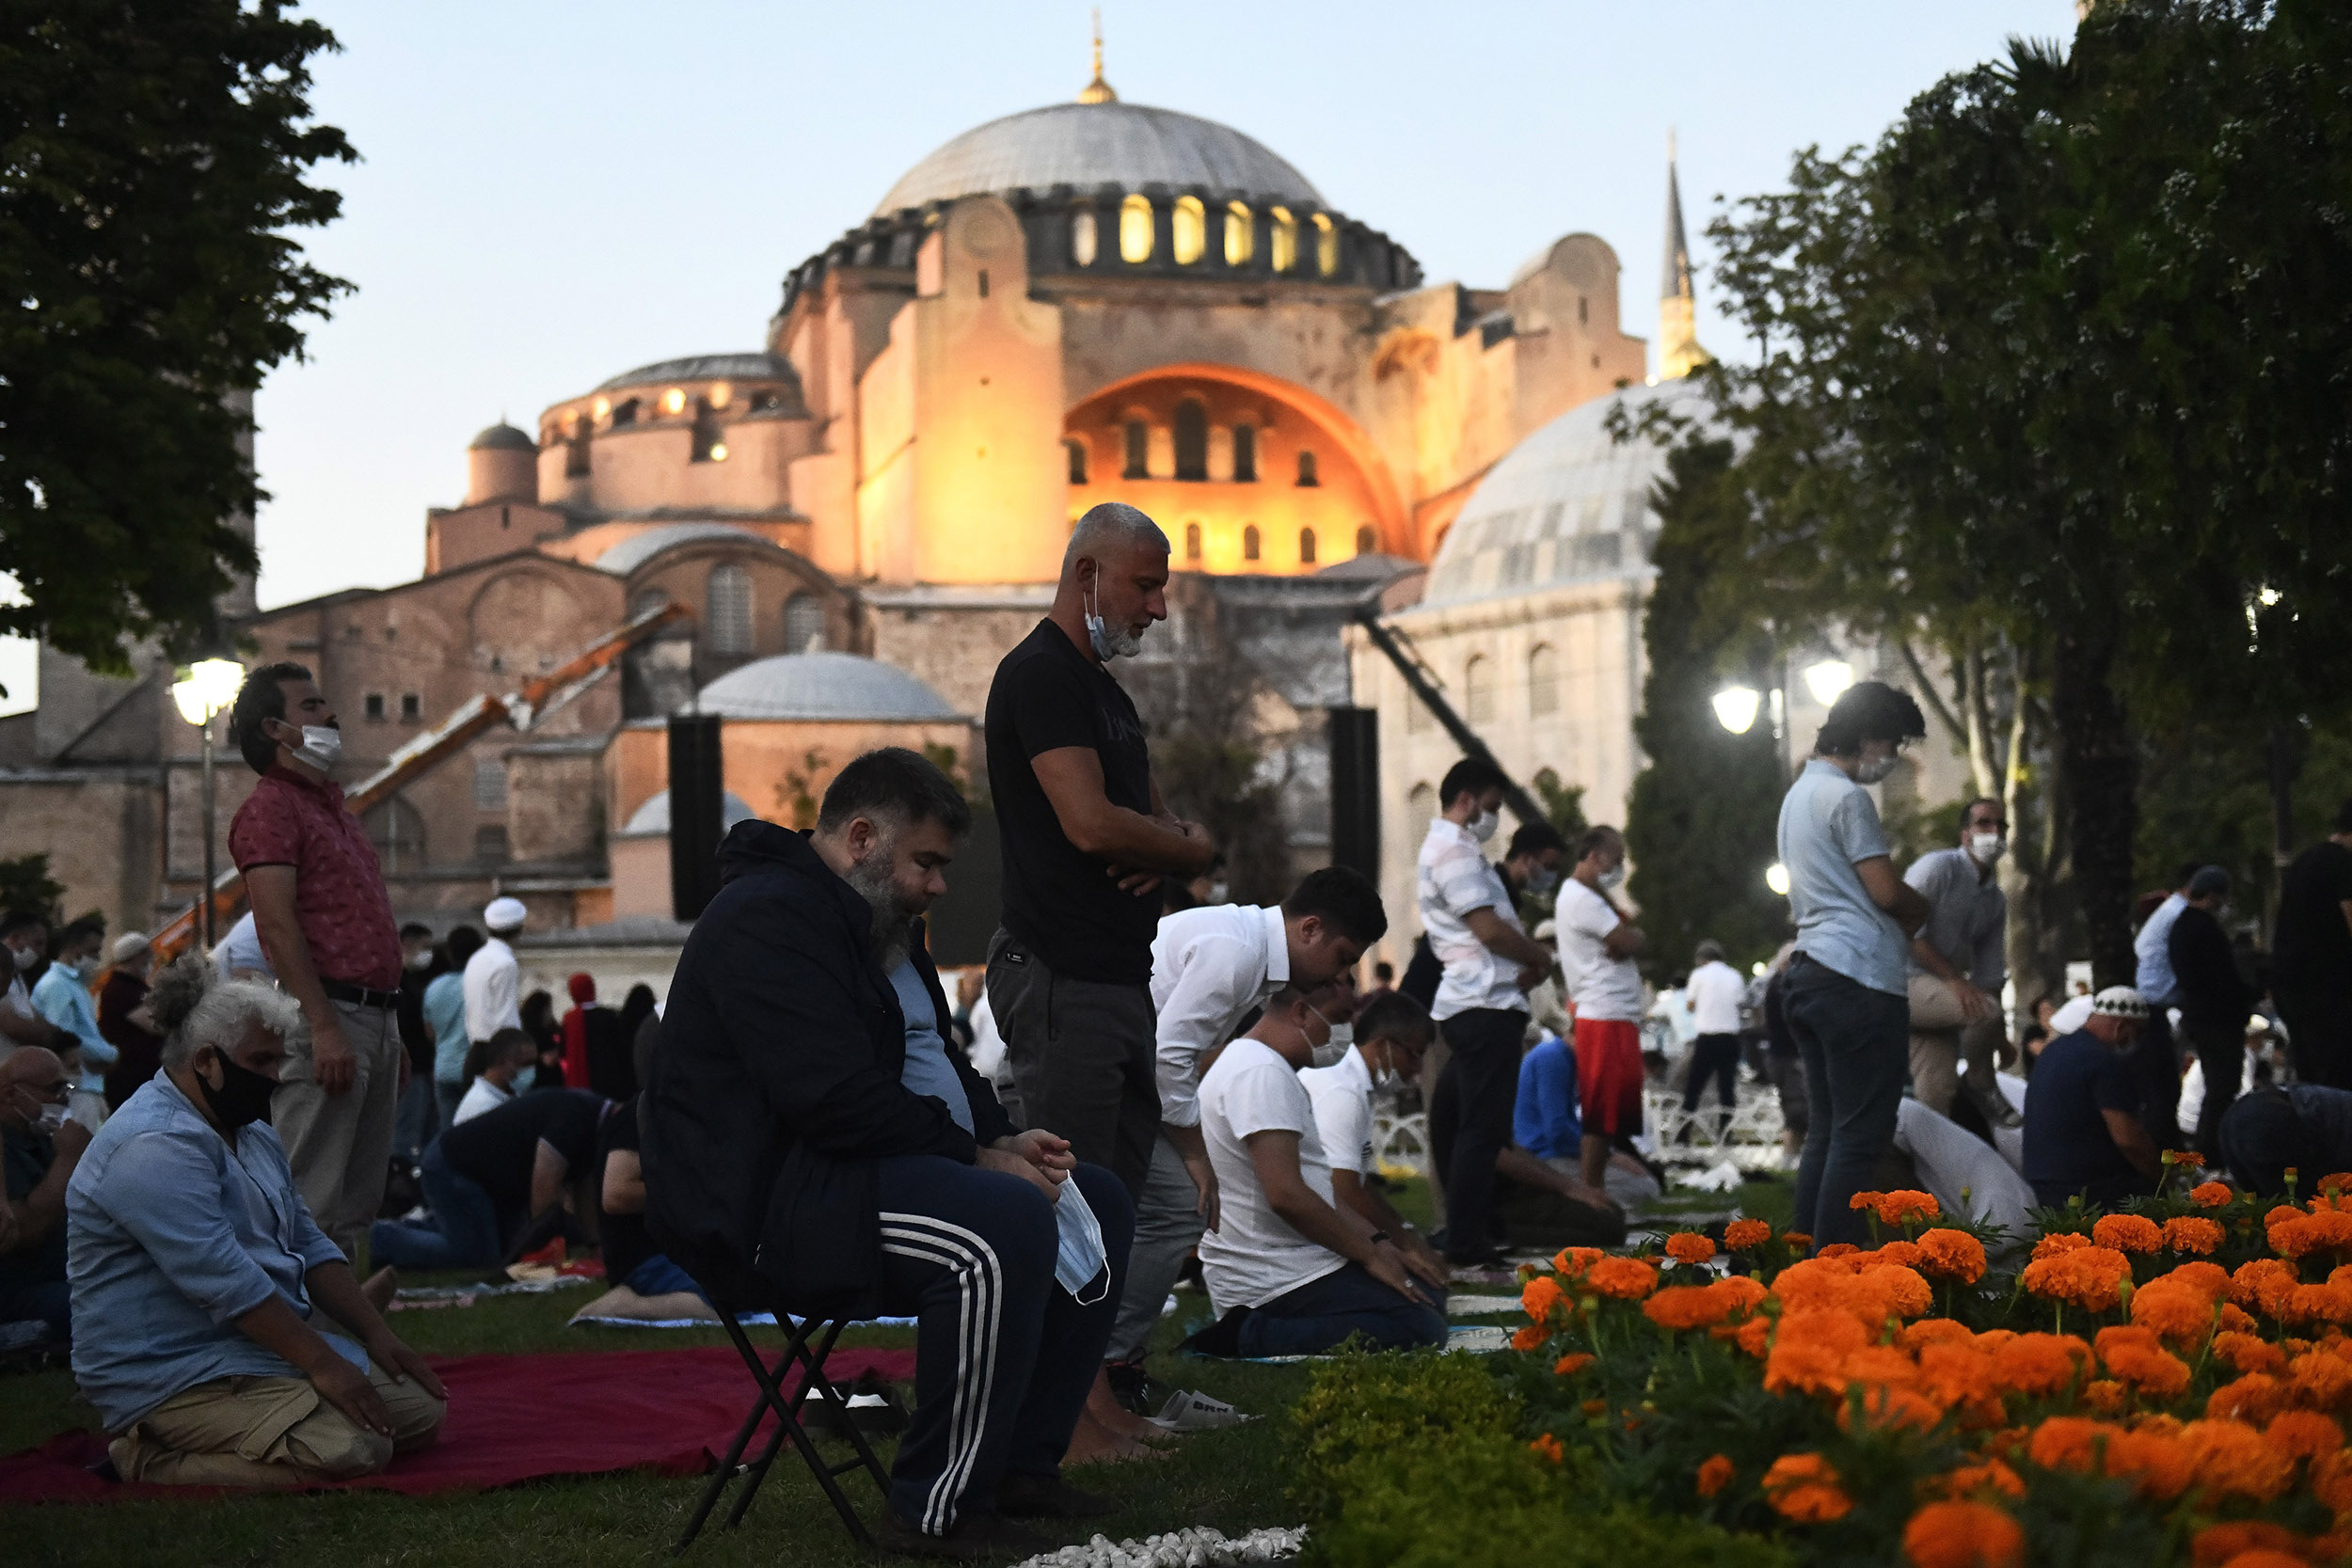 Istanbul's-Hagia-Sophia-opens-for-Muslim-prayers-for-first-time-in-86-years